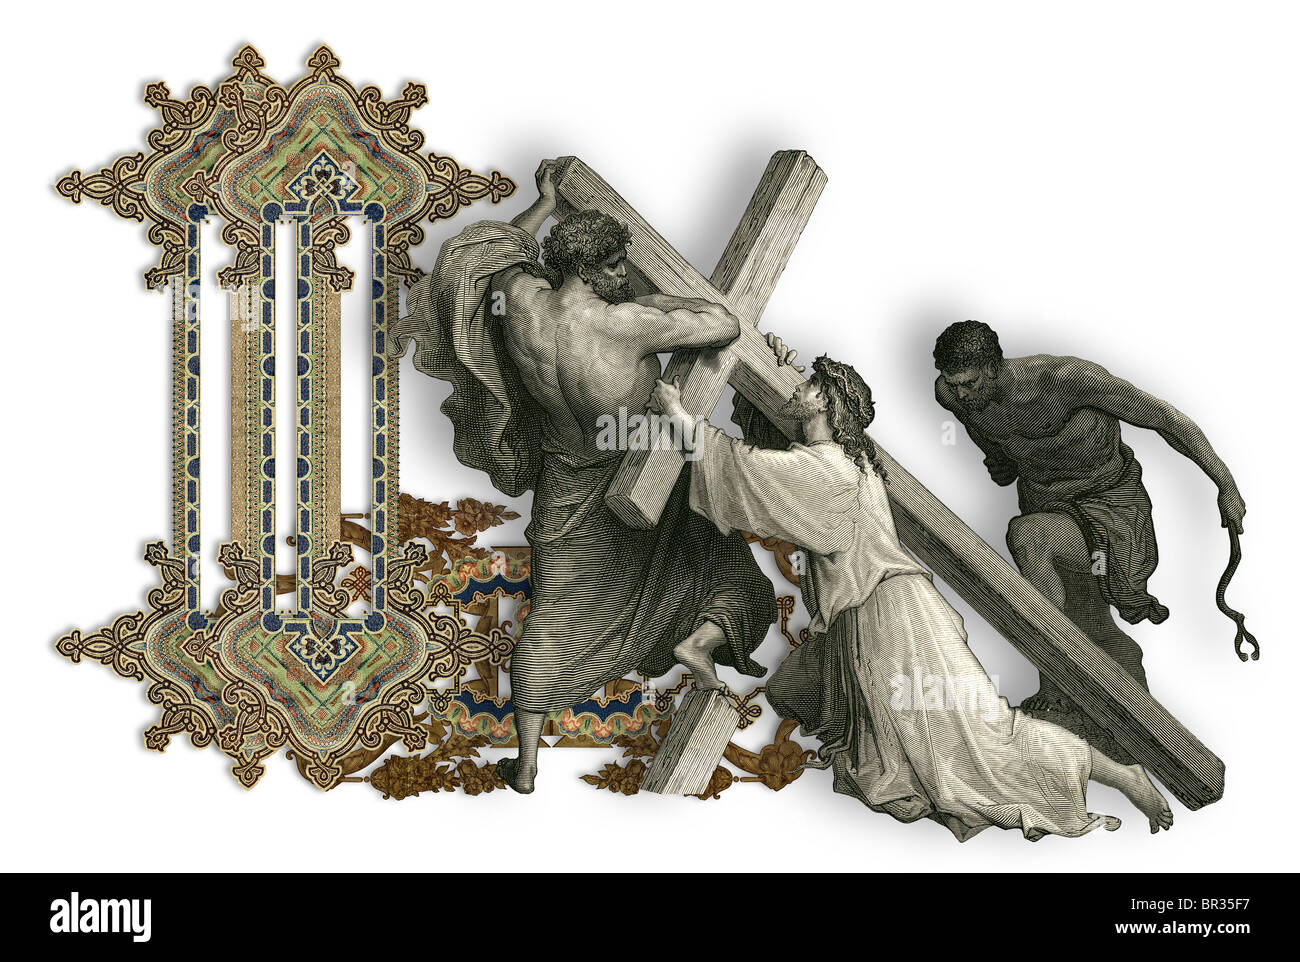 Victorian letter l with jesus christ enfeebled by the weight of the victorian letter l with jesus christ enfeebled by the weight of the cross thecheapjerseys Gallery